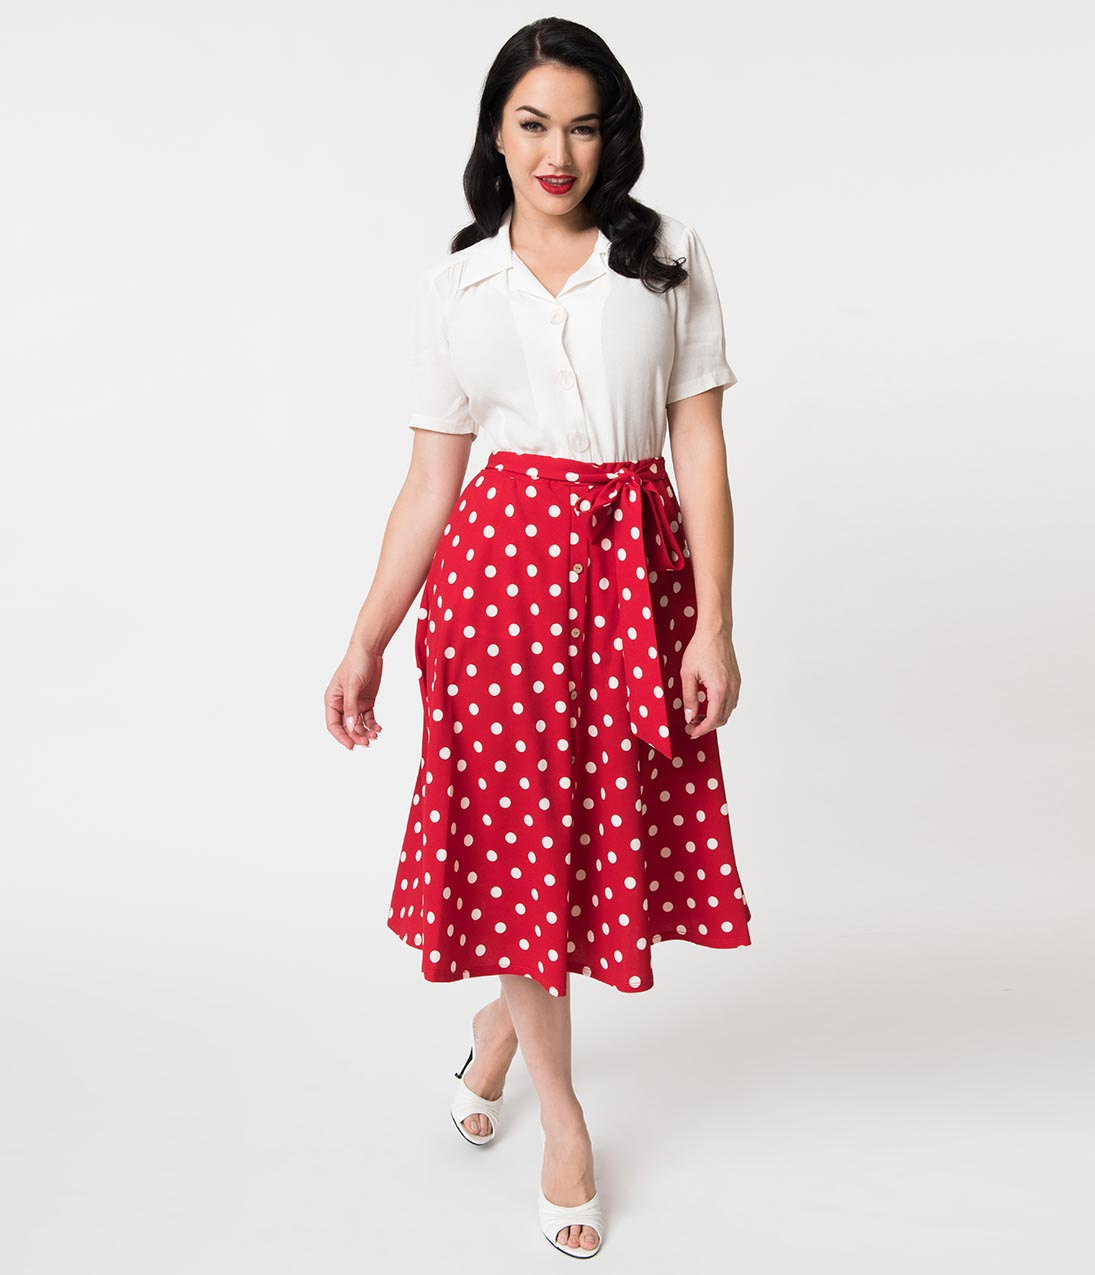 1950s Swing Skirt, Poodle Skirt, Pencil Skirts Vintage Style Red  White Polka Dot Tie Midi Skirt $48.00 AT vintagedancer.com